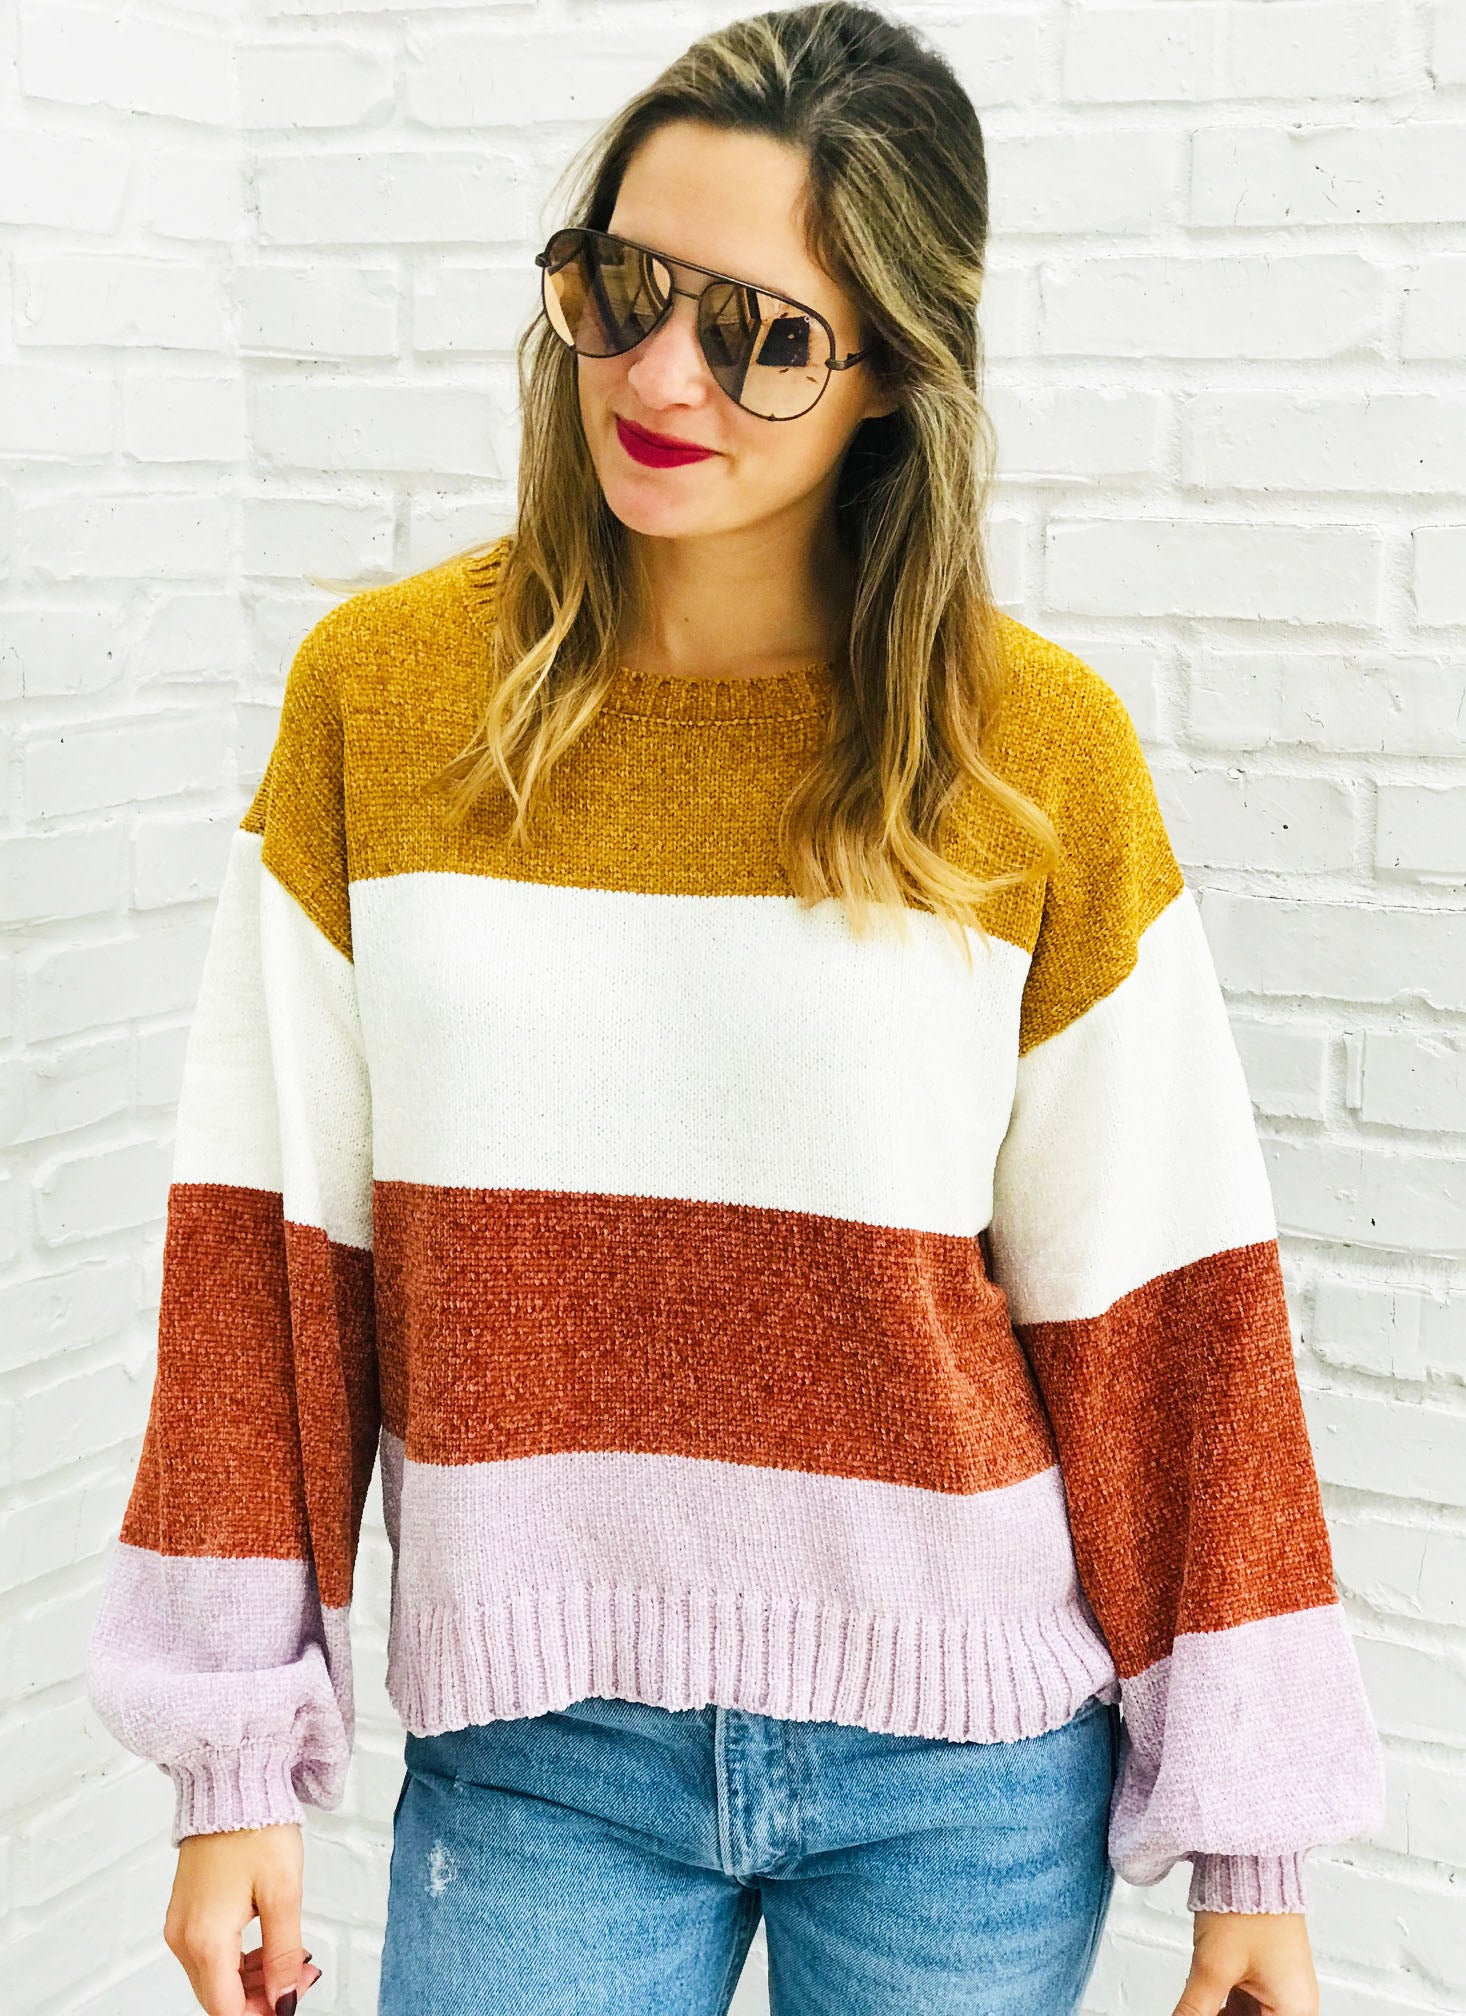 Smithy Sweater